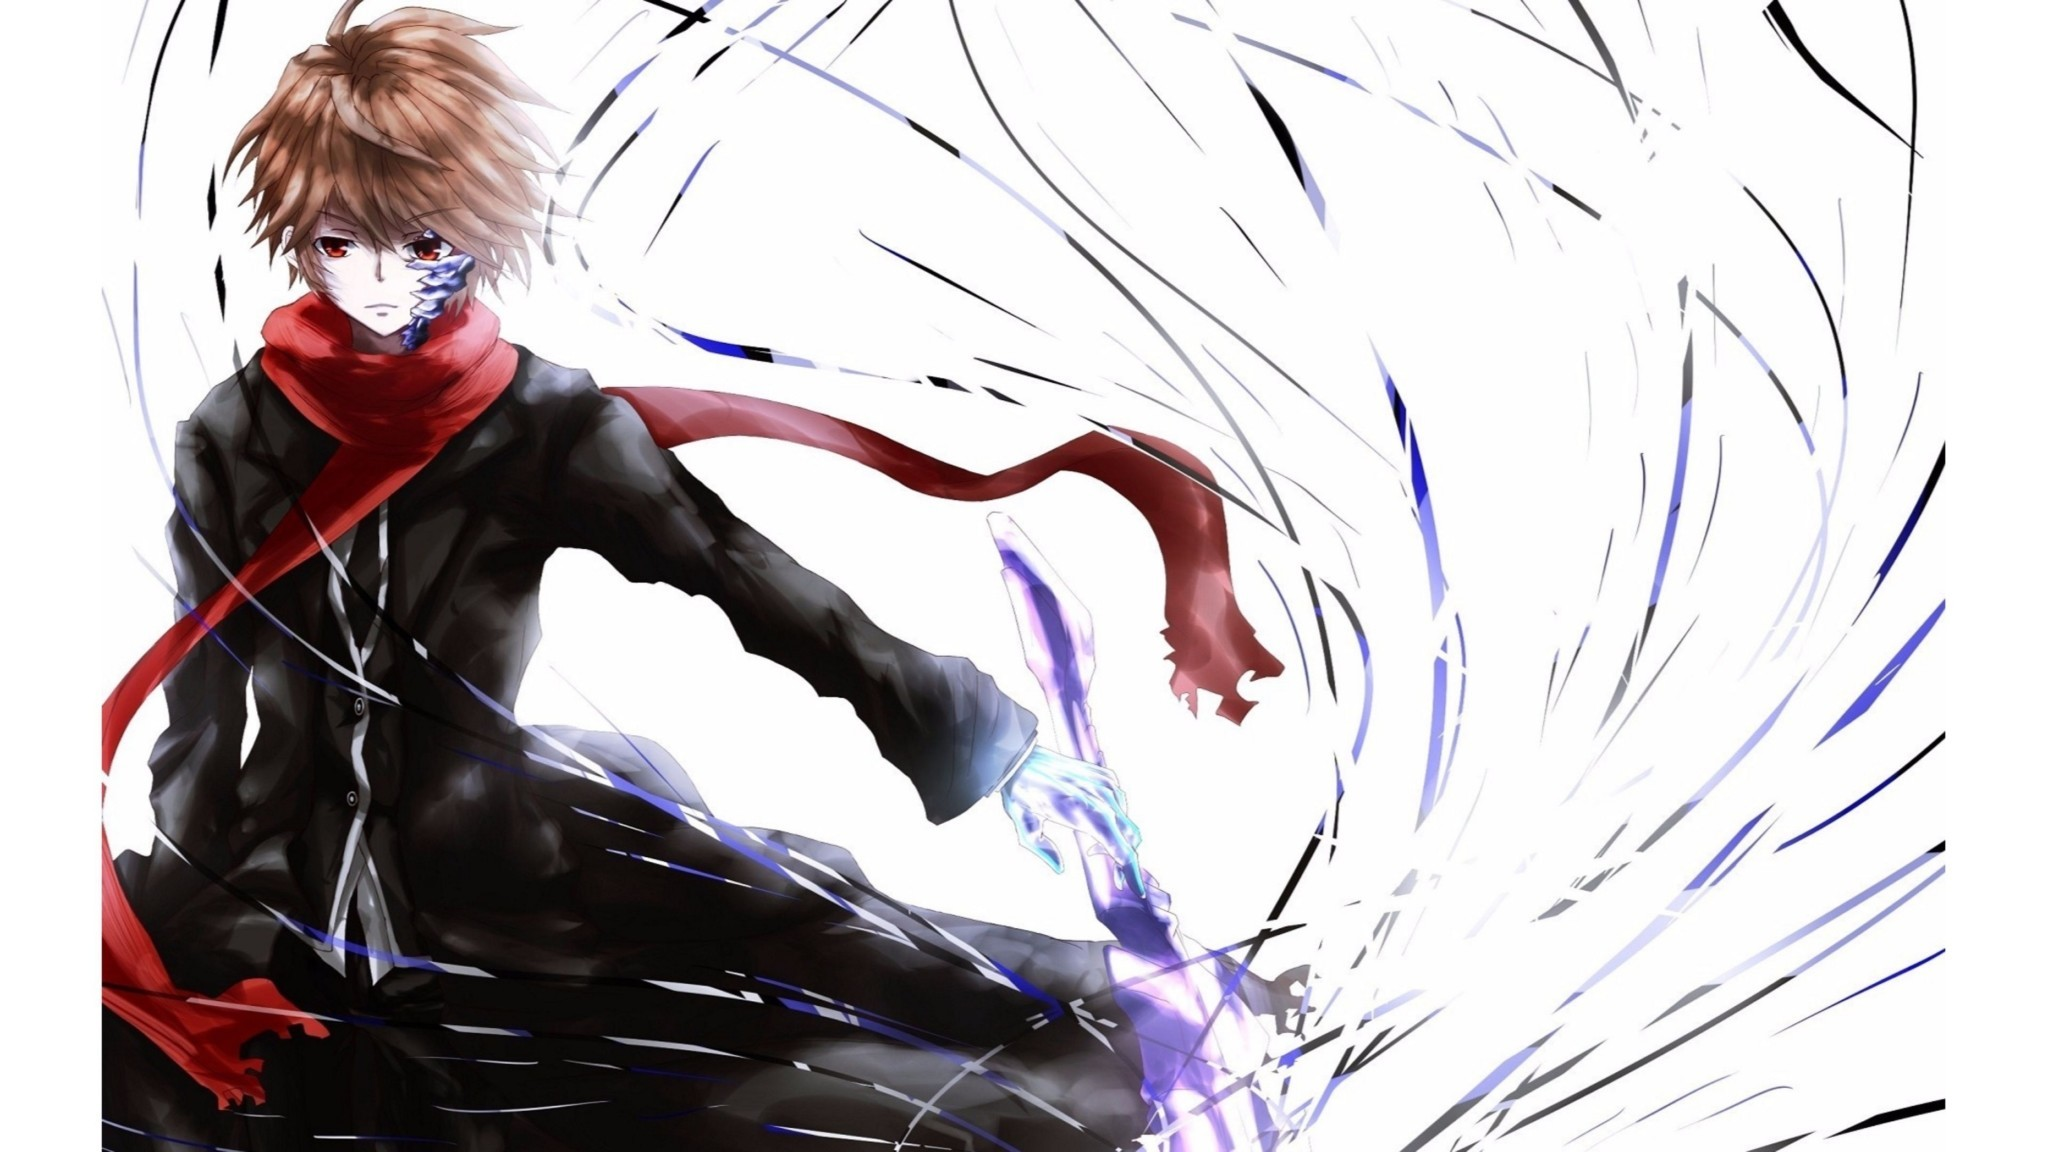 Anime wallpapers hd 71 background pictures - Best anime picture hd ...